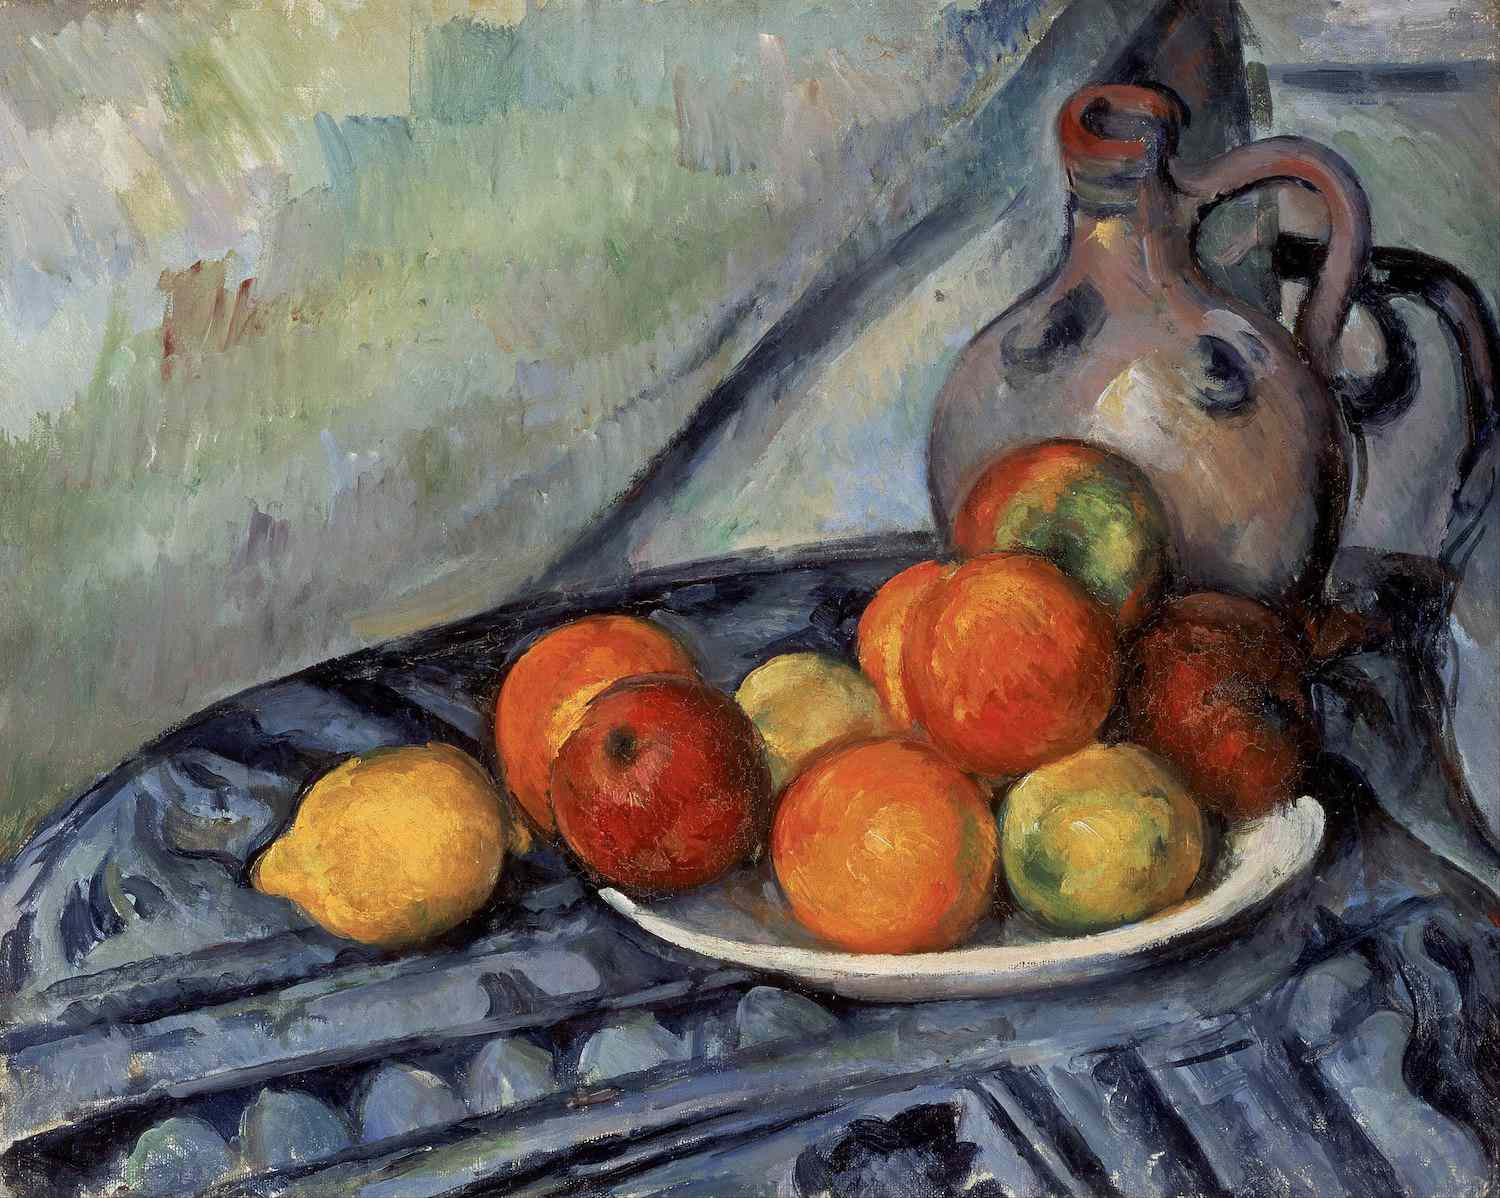 Fruit and a Jug on a Table painting by Cézanne